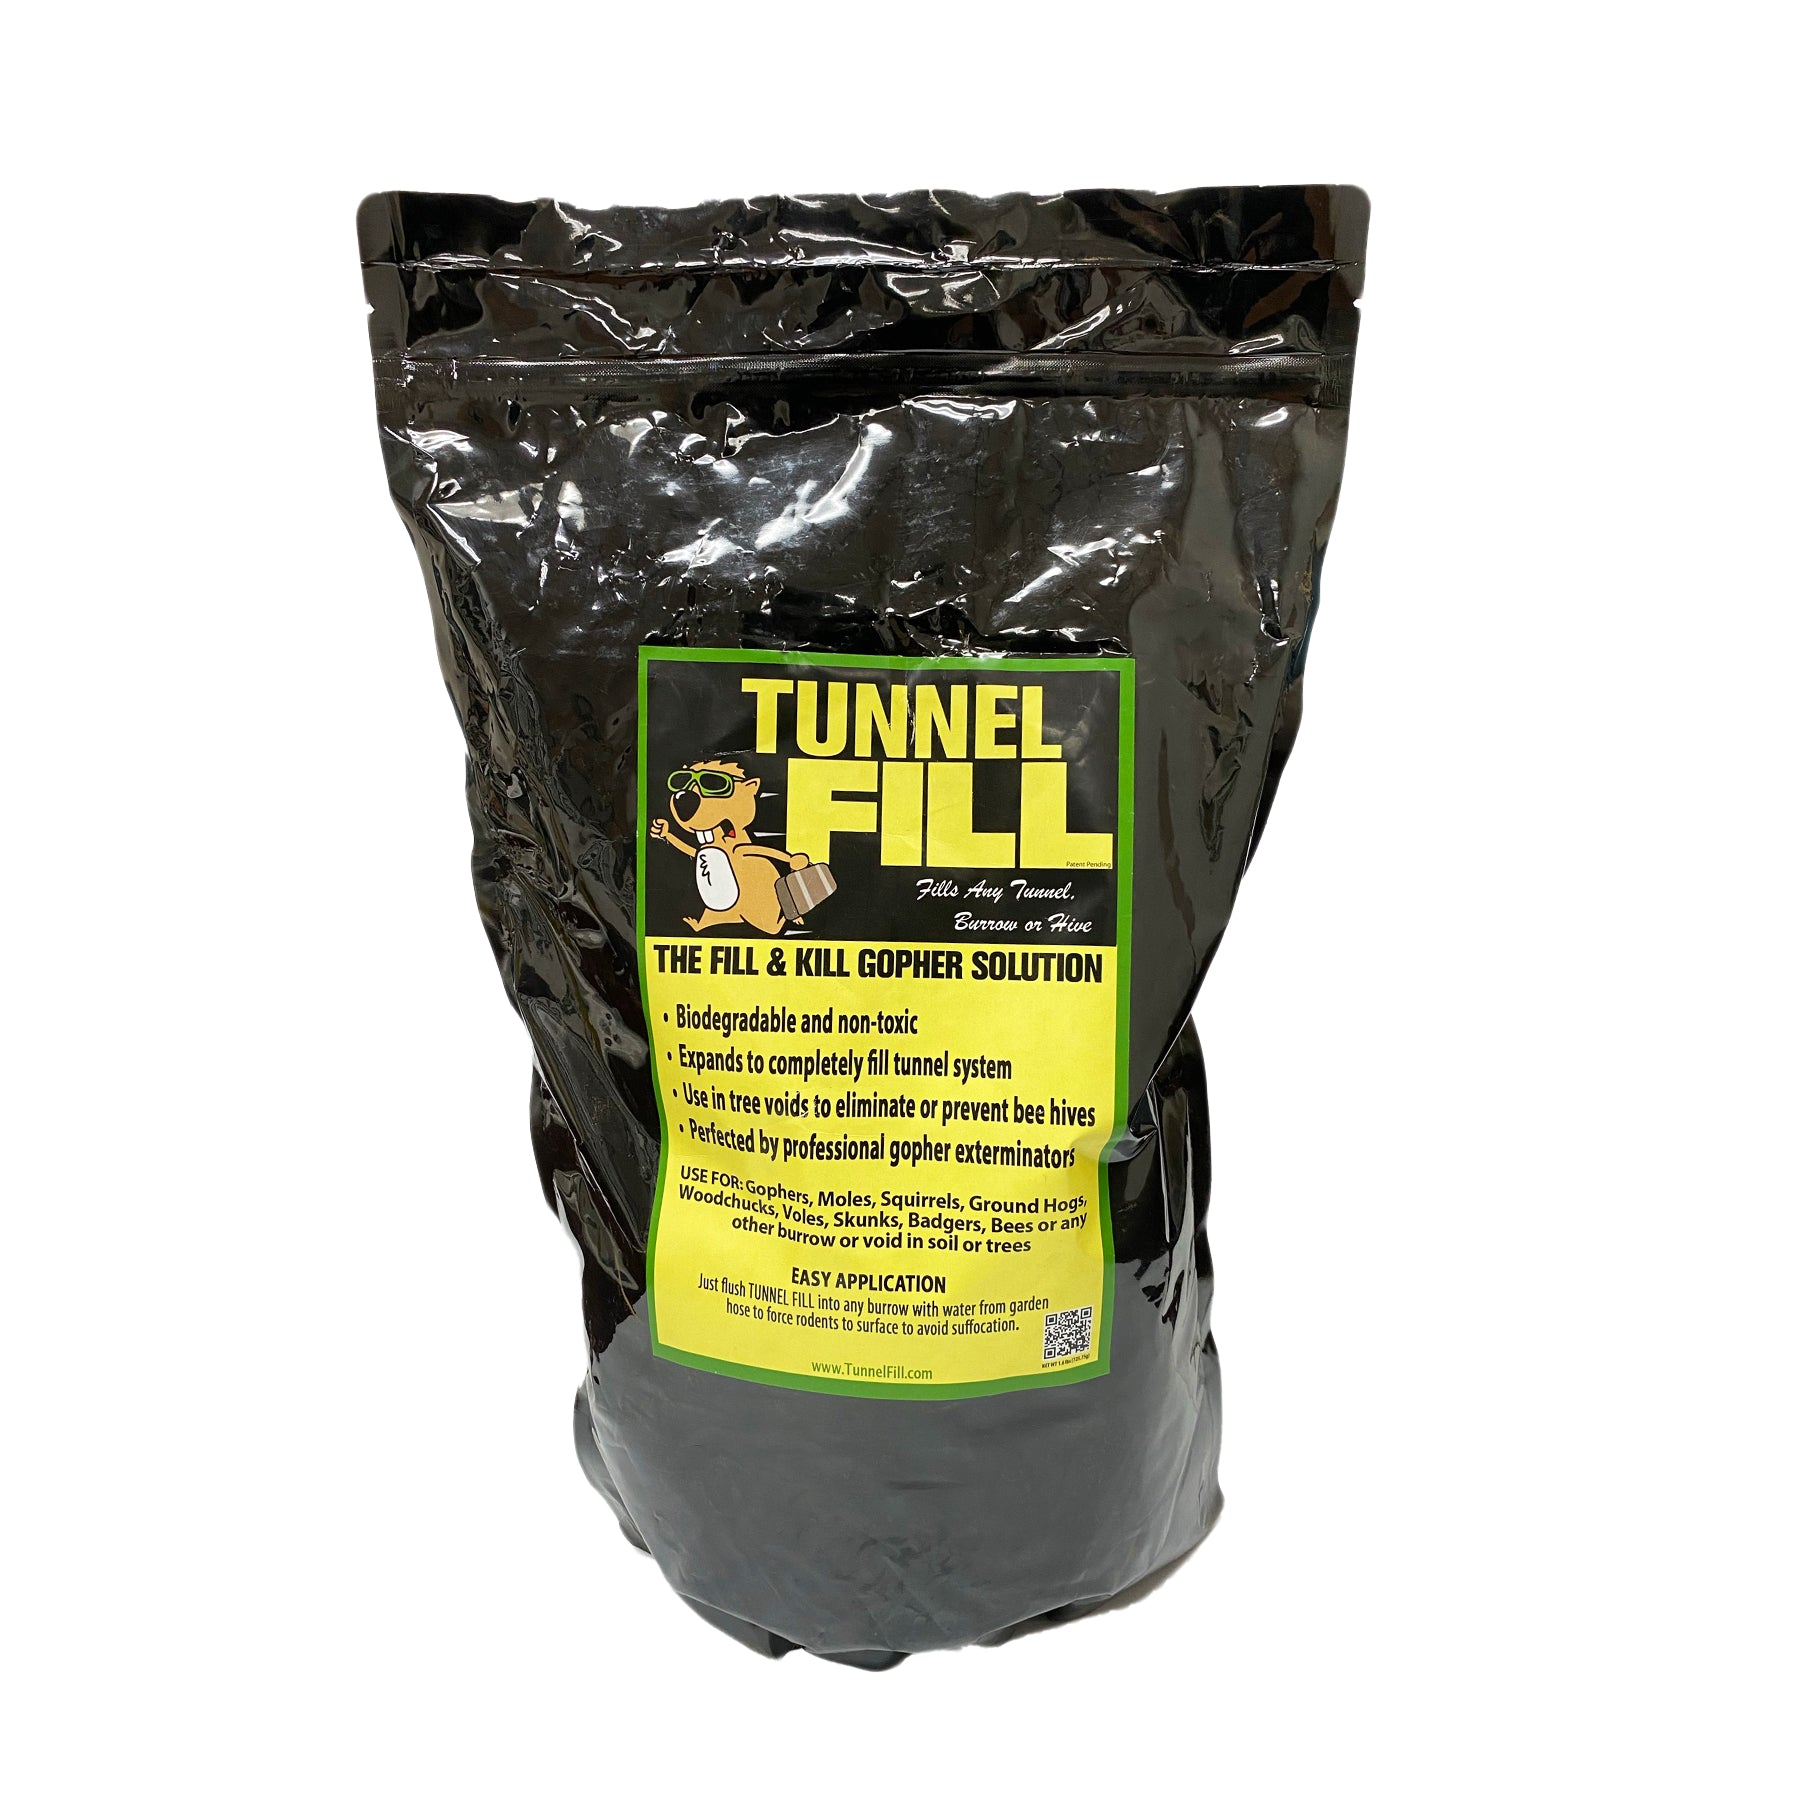 Tunnel Fill Bag